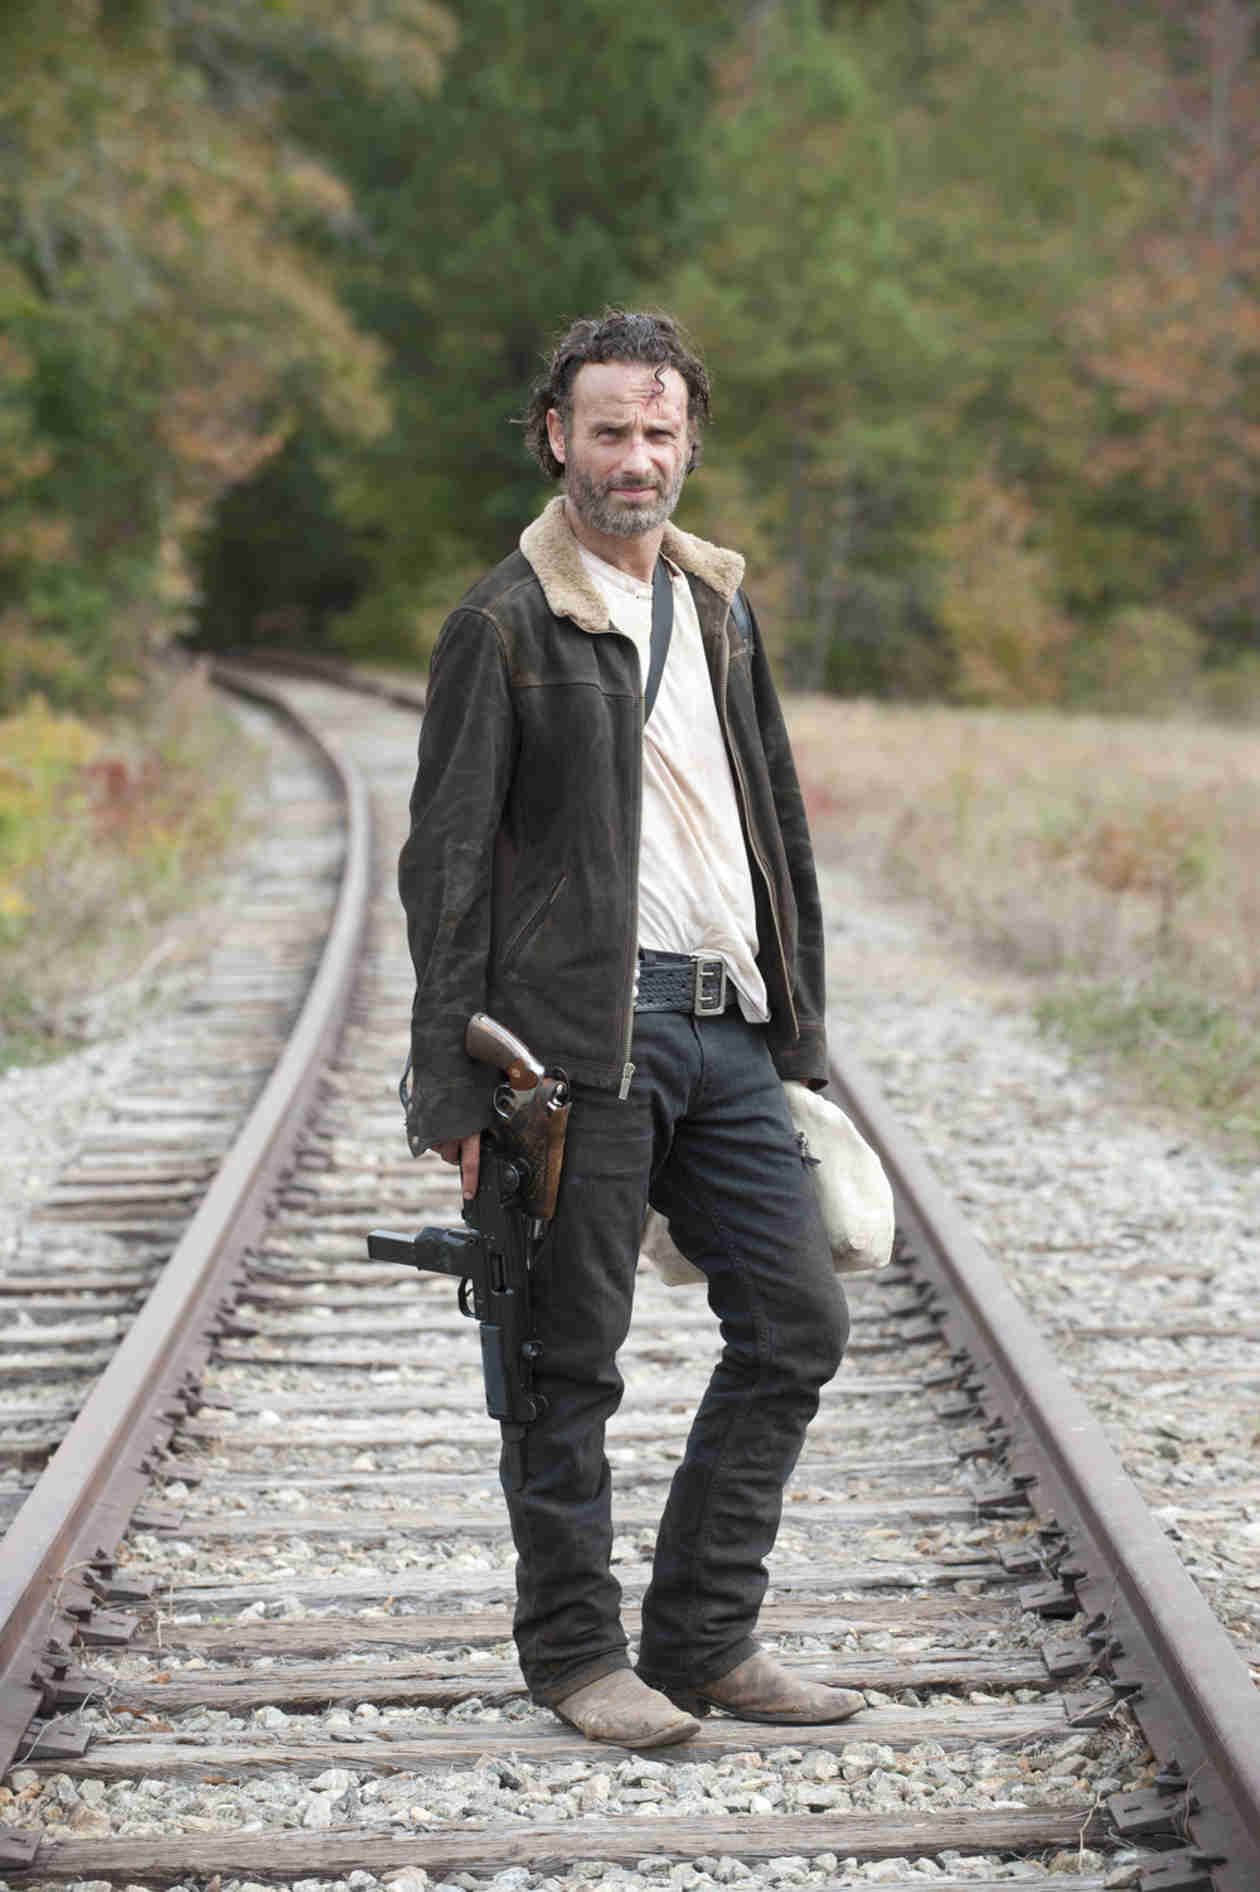 The Walking Dead Season 5 Spoilers: What Happens Next? Everything We Know So Far